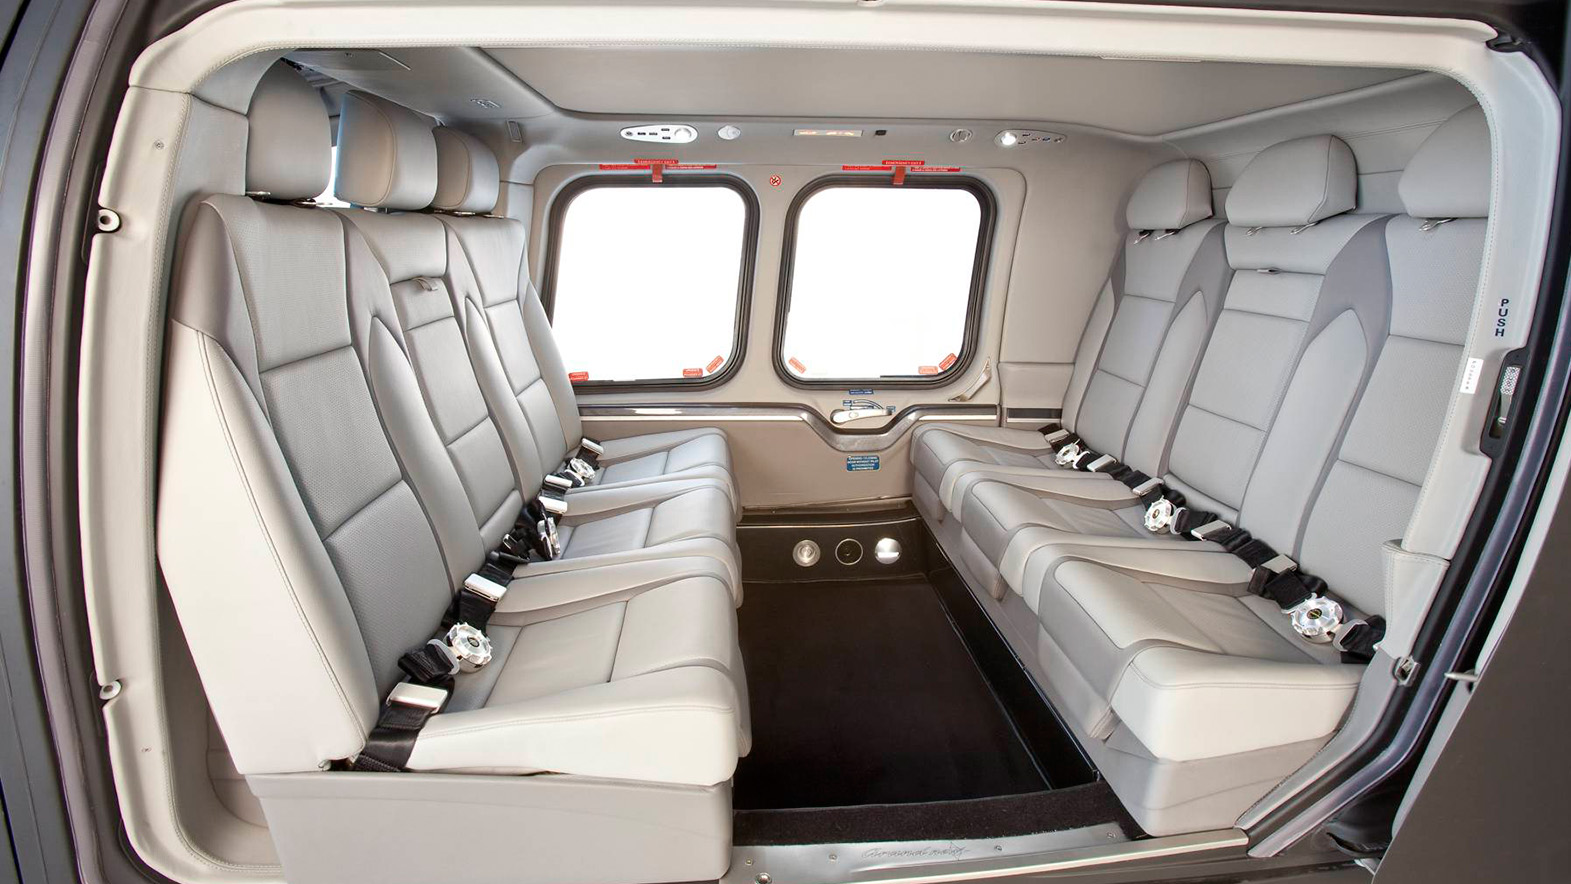 Interior of AGUSTA WESTLAND 109 POWER GRAND